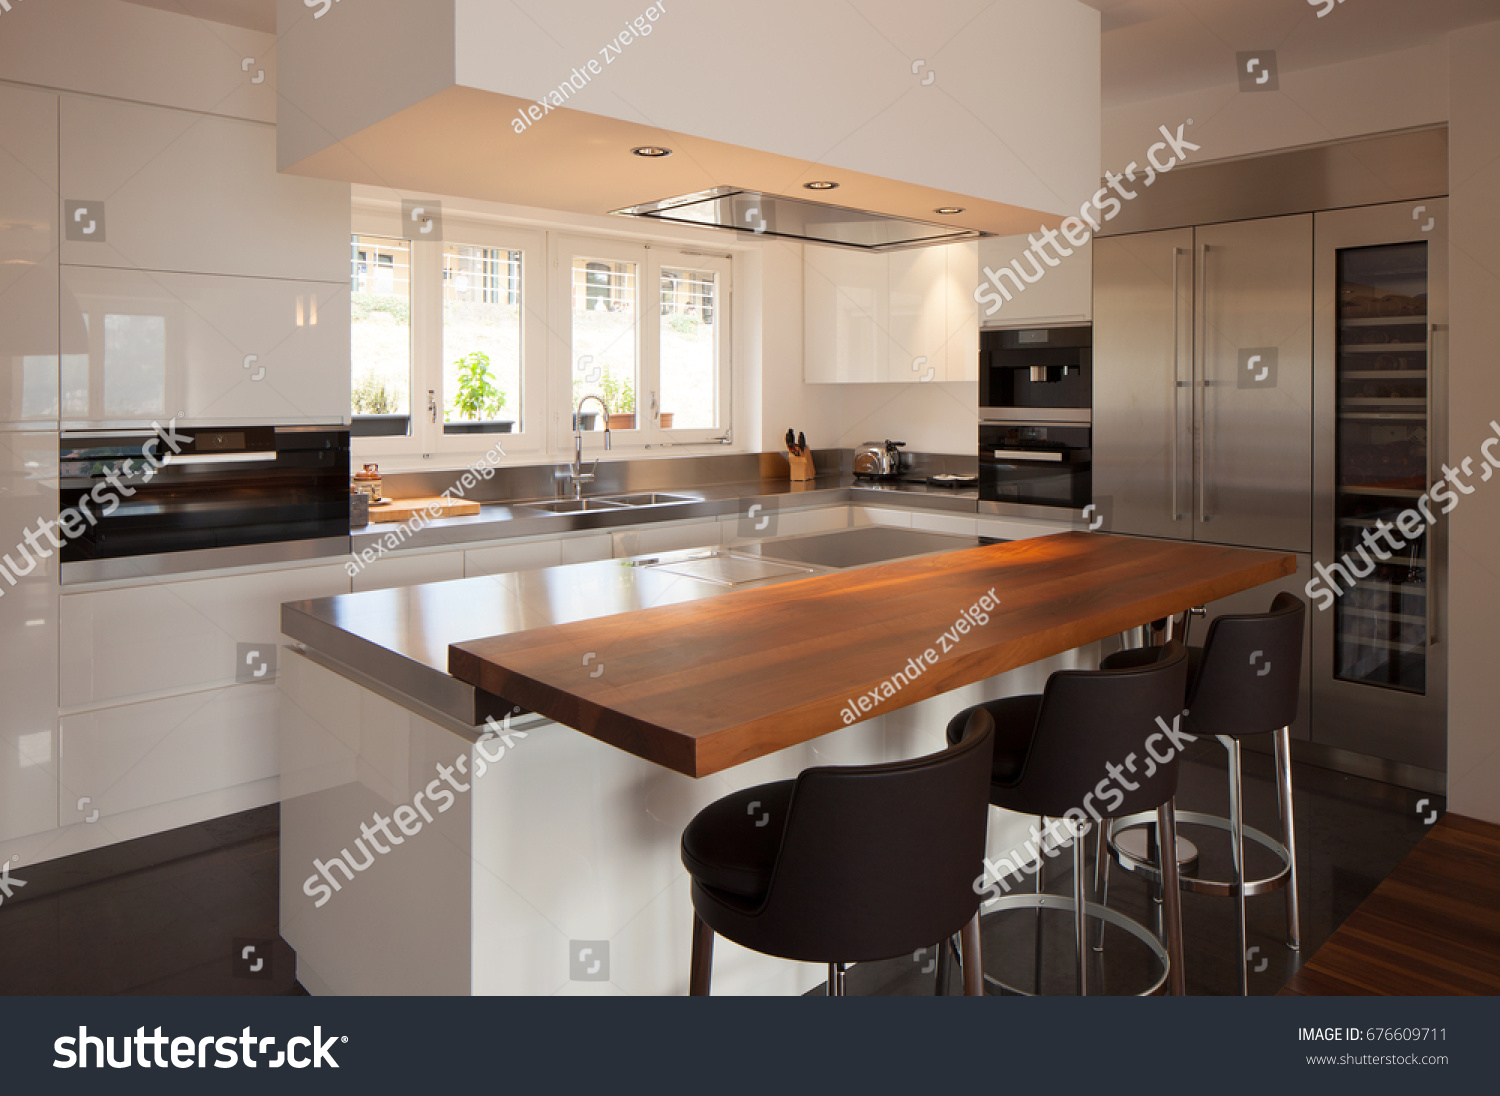 modern kitchen in luxury apartment nobody inside